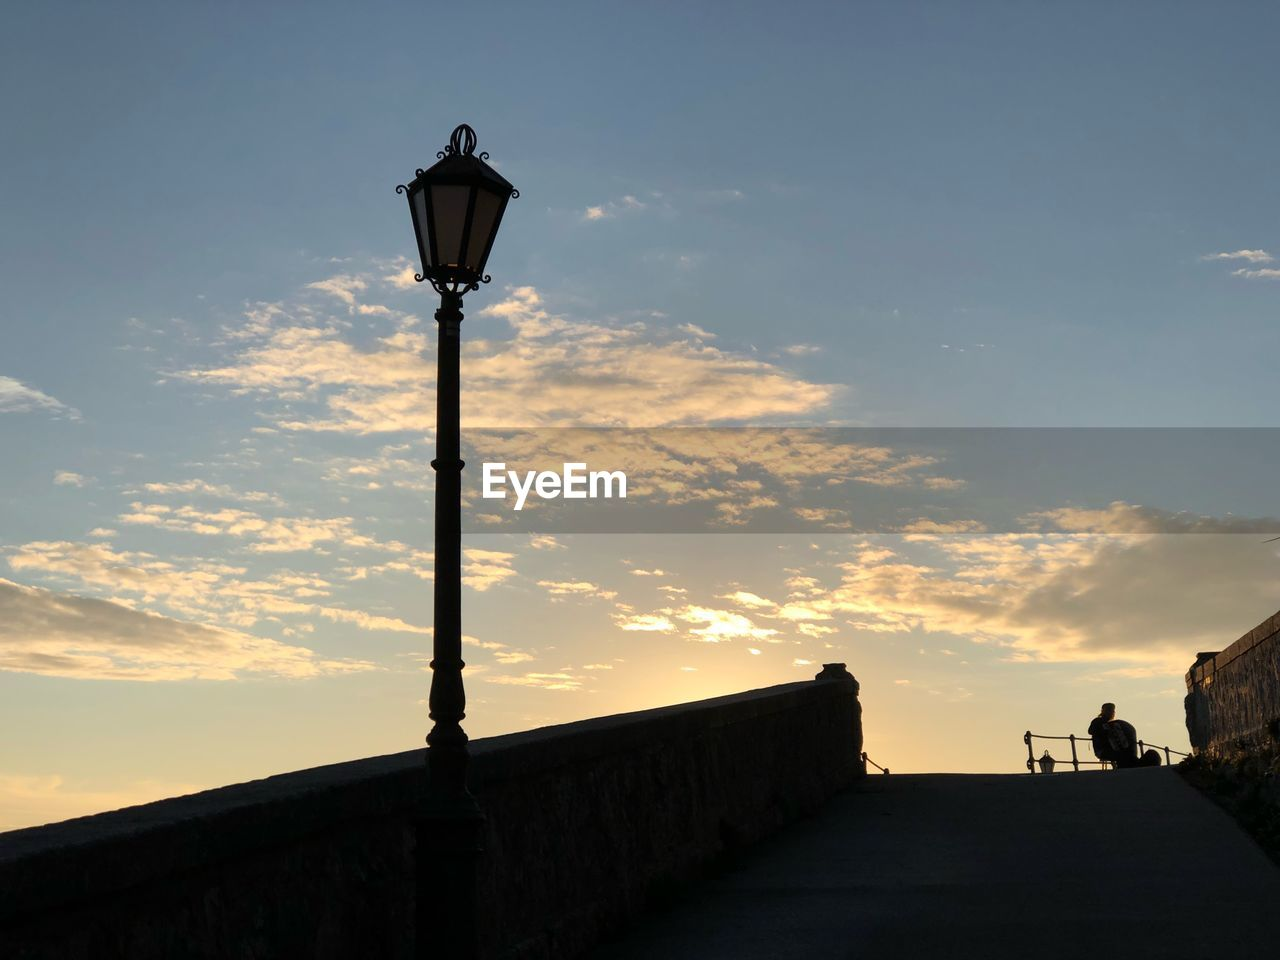 street, sky, lighting equipment, sunset, street light, architecture, built structure, cloud - sky, nature, orange color, low angle view, outdoors, building exterior, silhouette, connection, beauty in nature, no people, electric light, light, scenics - nature, electric lamp